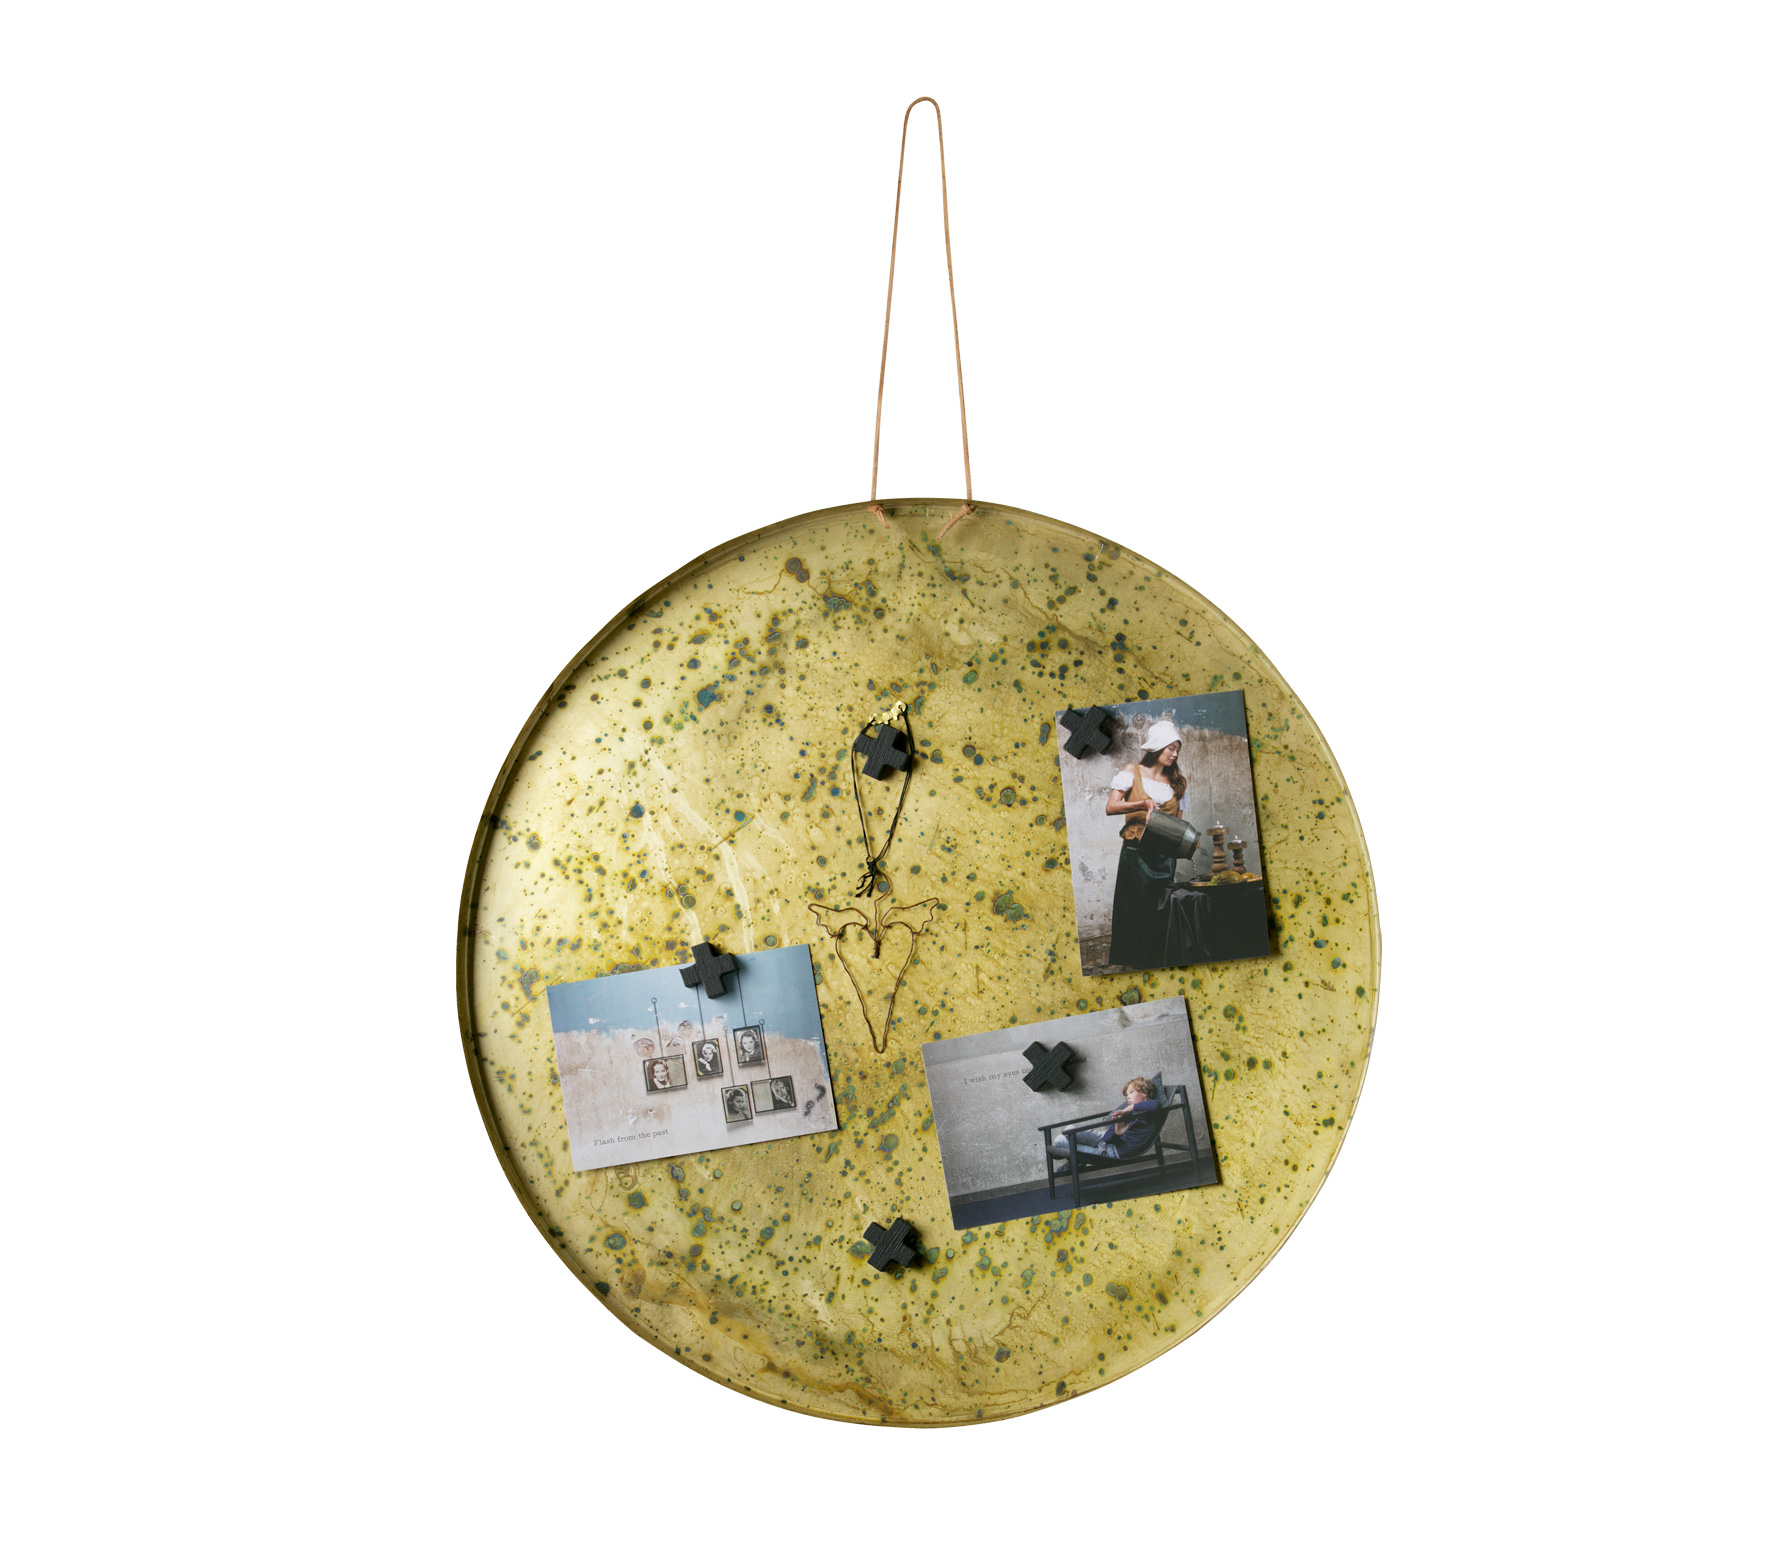 BePureHome Memories magneetbord antique brass vrijstaand